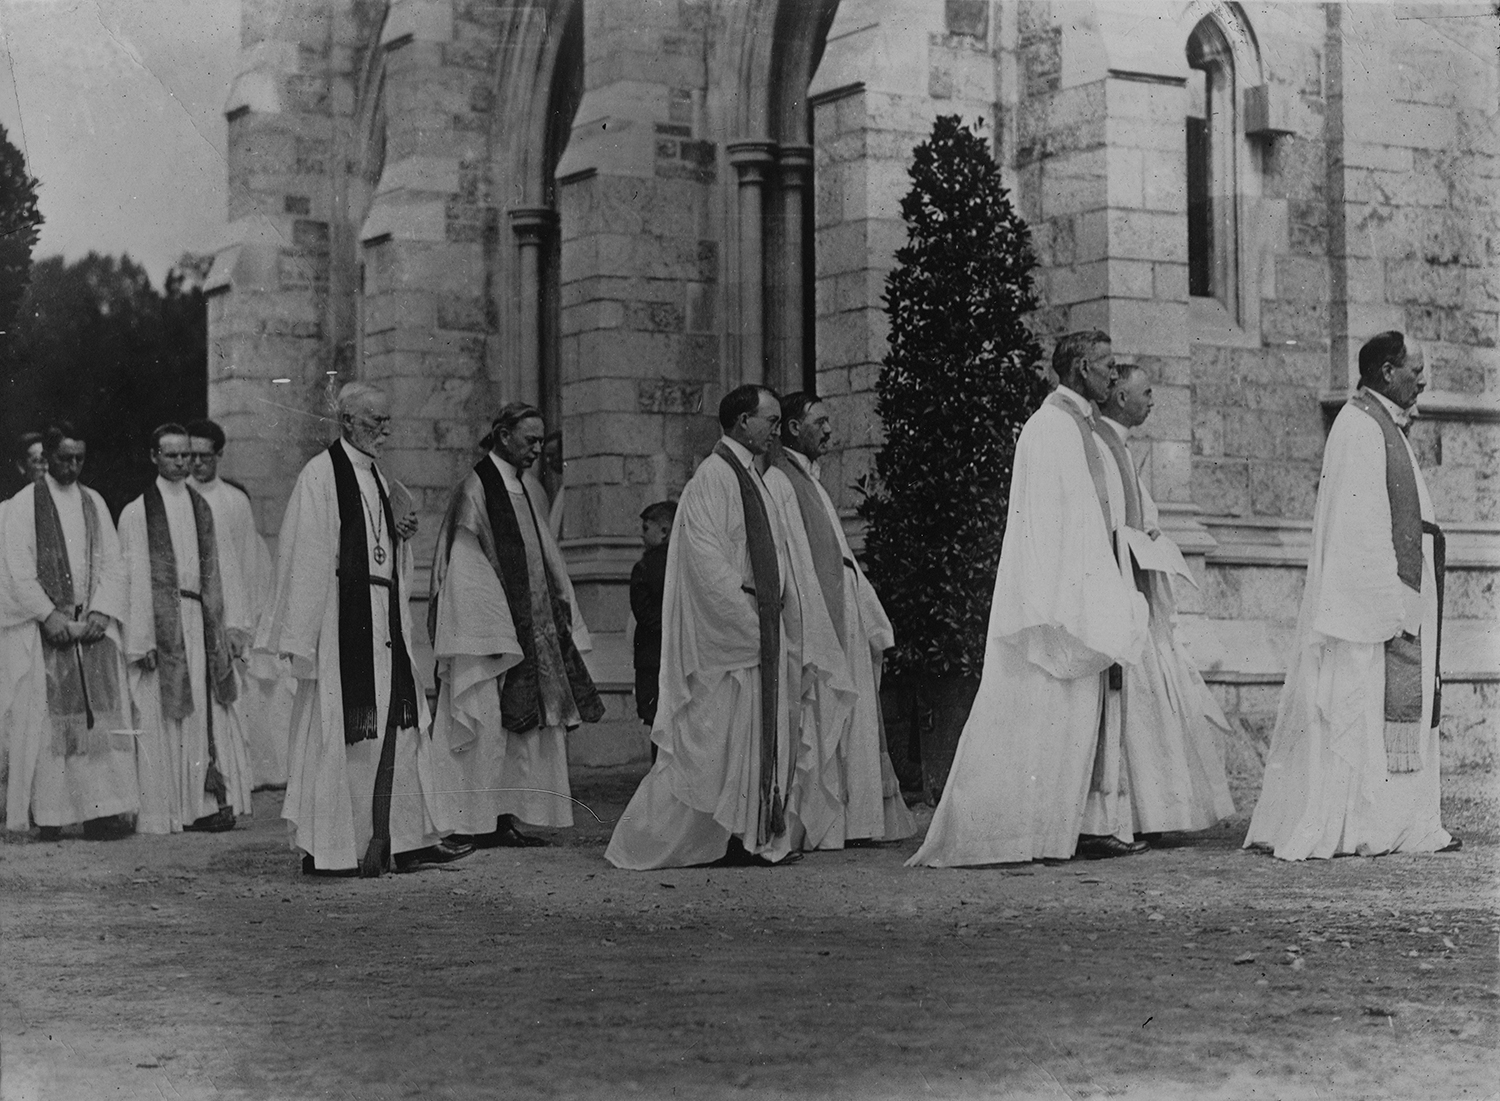 Figure 4: The procession of ministers outside the west door of Bryn Athyn Cathedral. This photo likely shows the procession leaving the church at the end of the service.